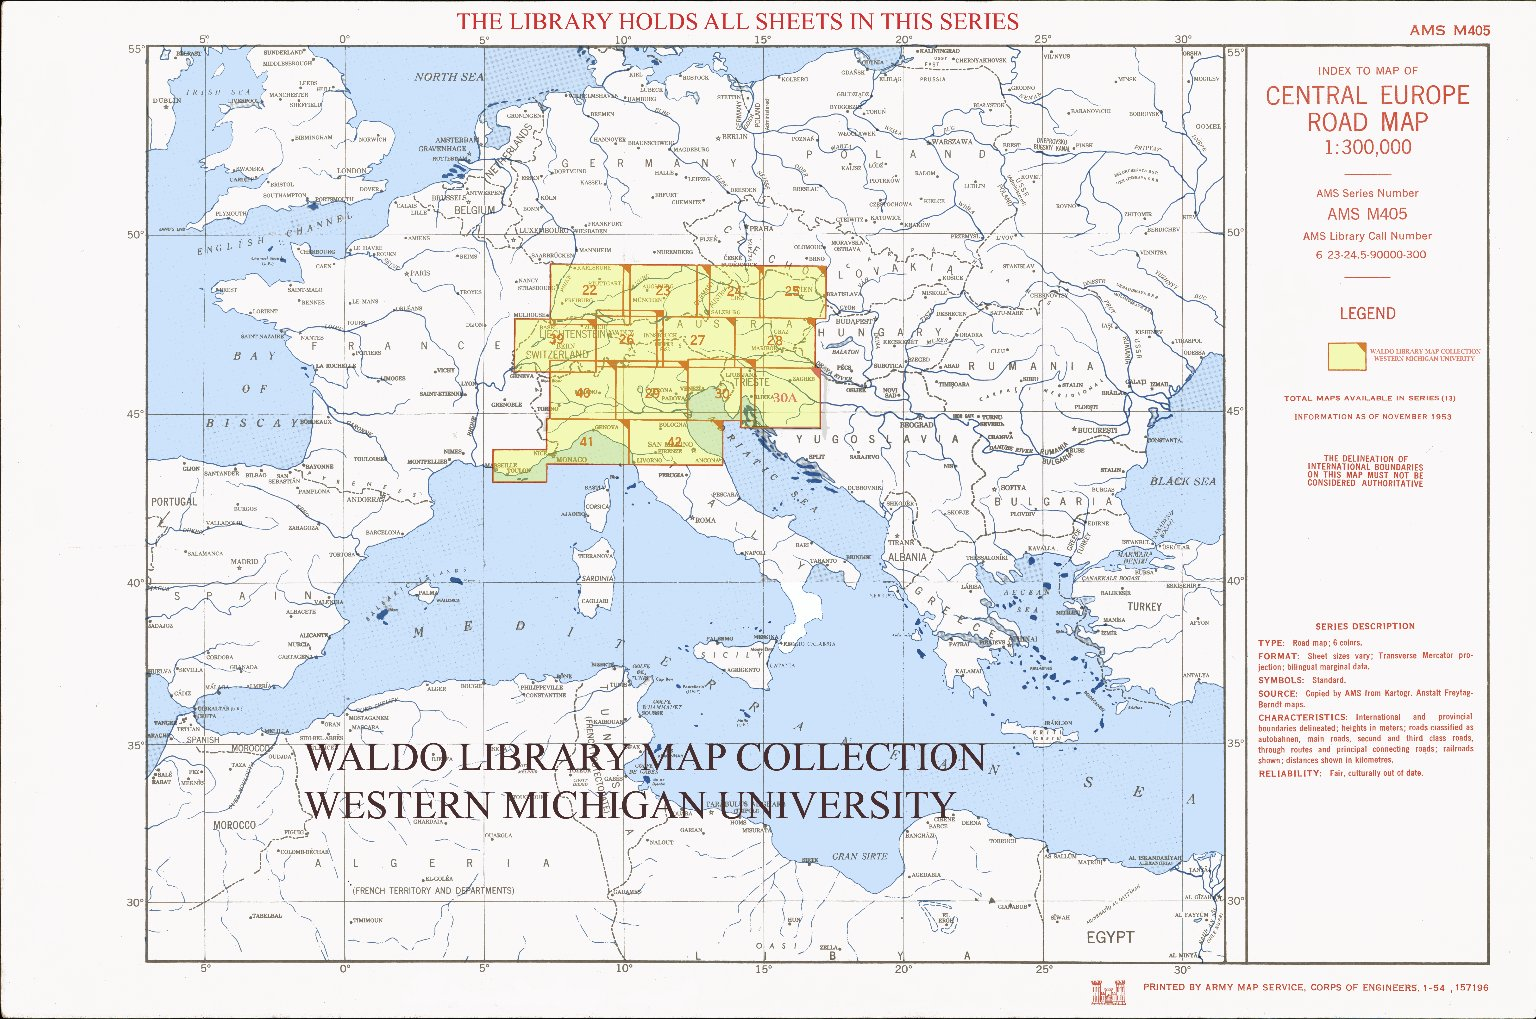 Index to map of Central Europe road map 1:300,000